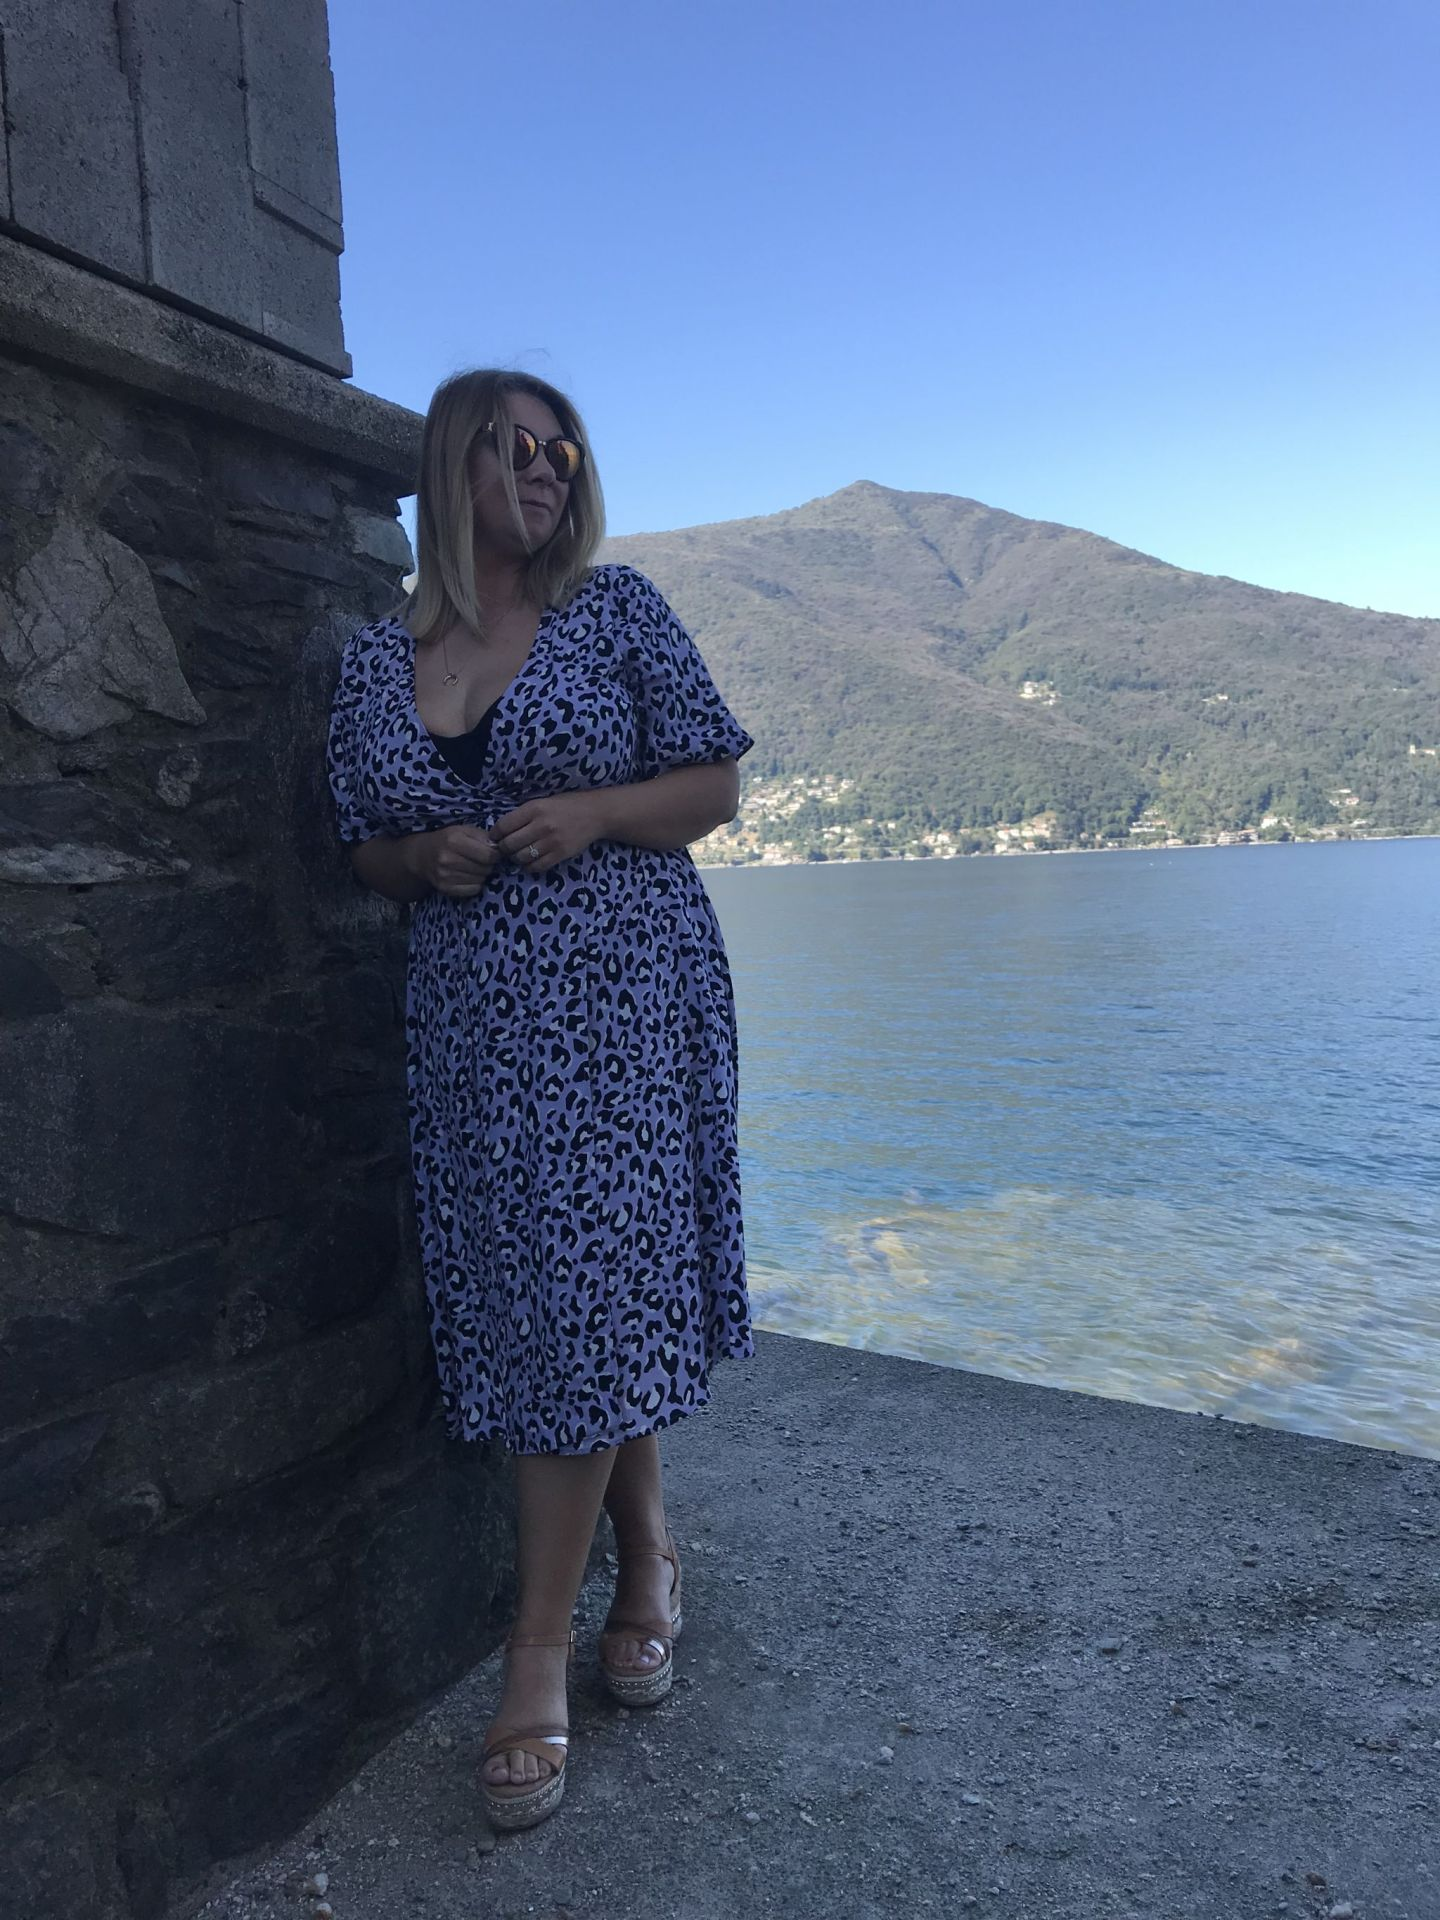 Lakeside views in the lilac animal print dress